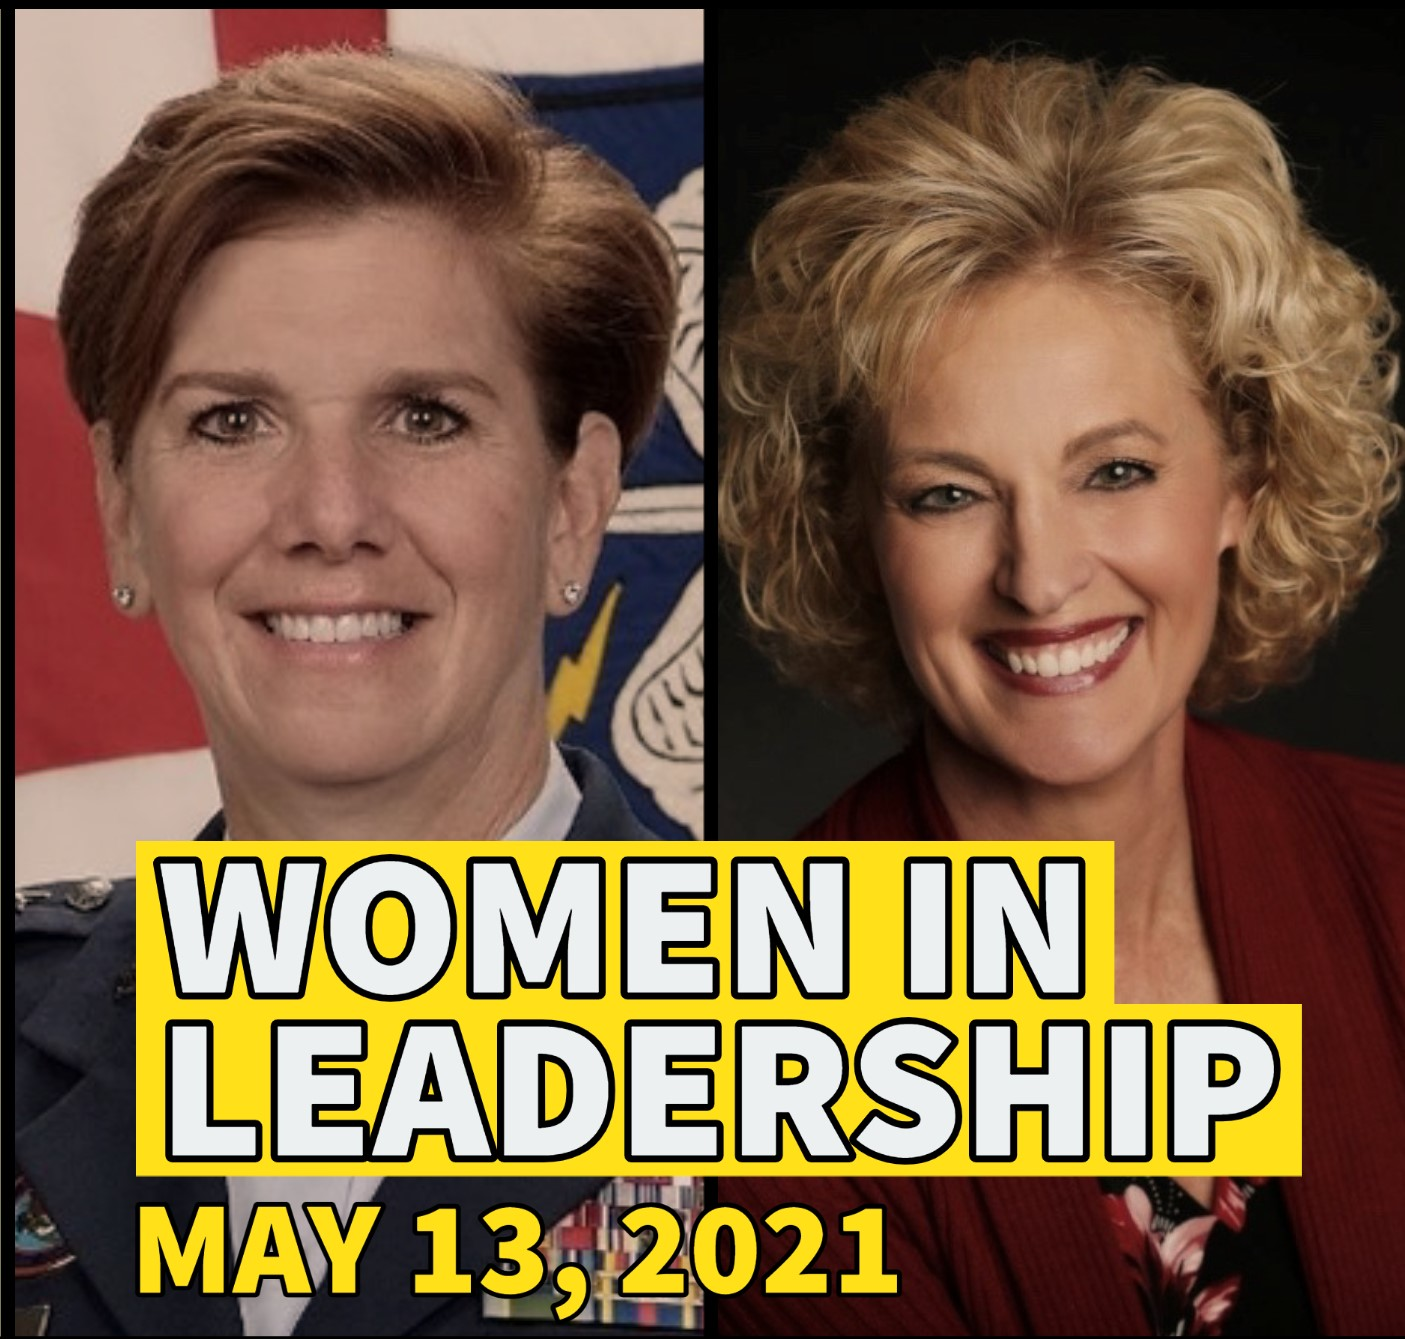 Women in Leadership 2021